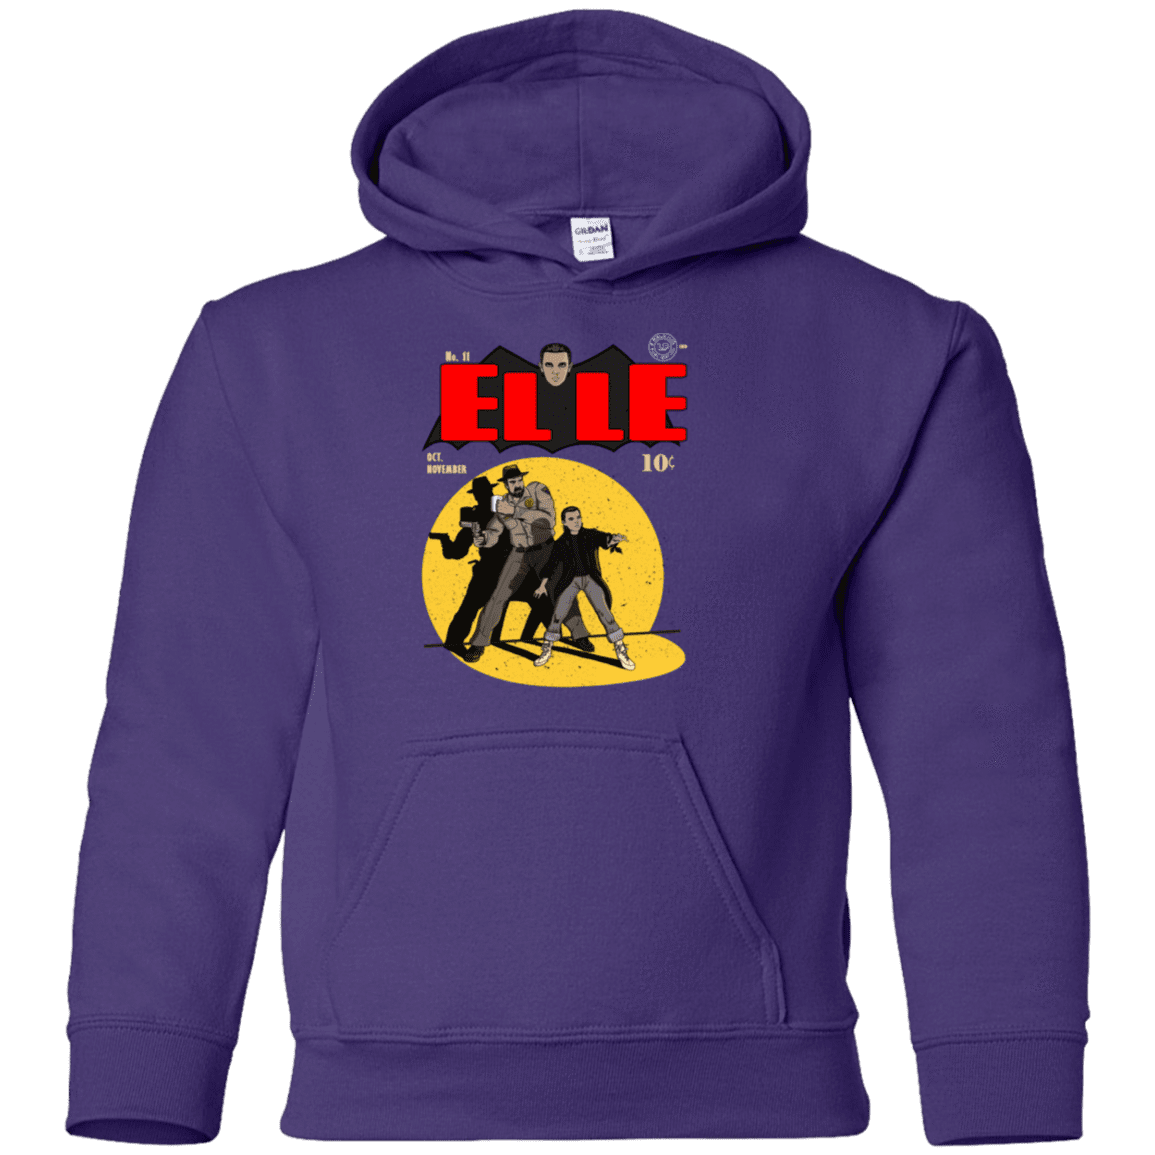 Sweatshirts Purple / YS Elle N11 Youth Hoodie